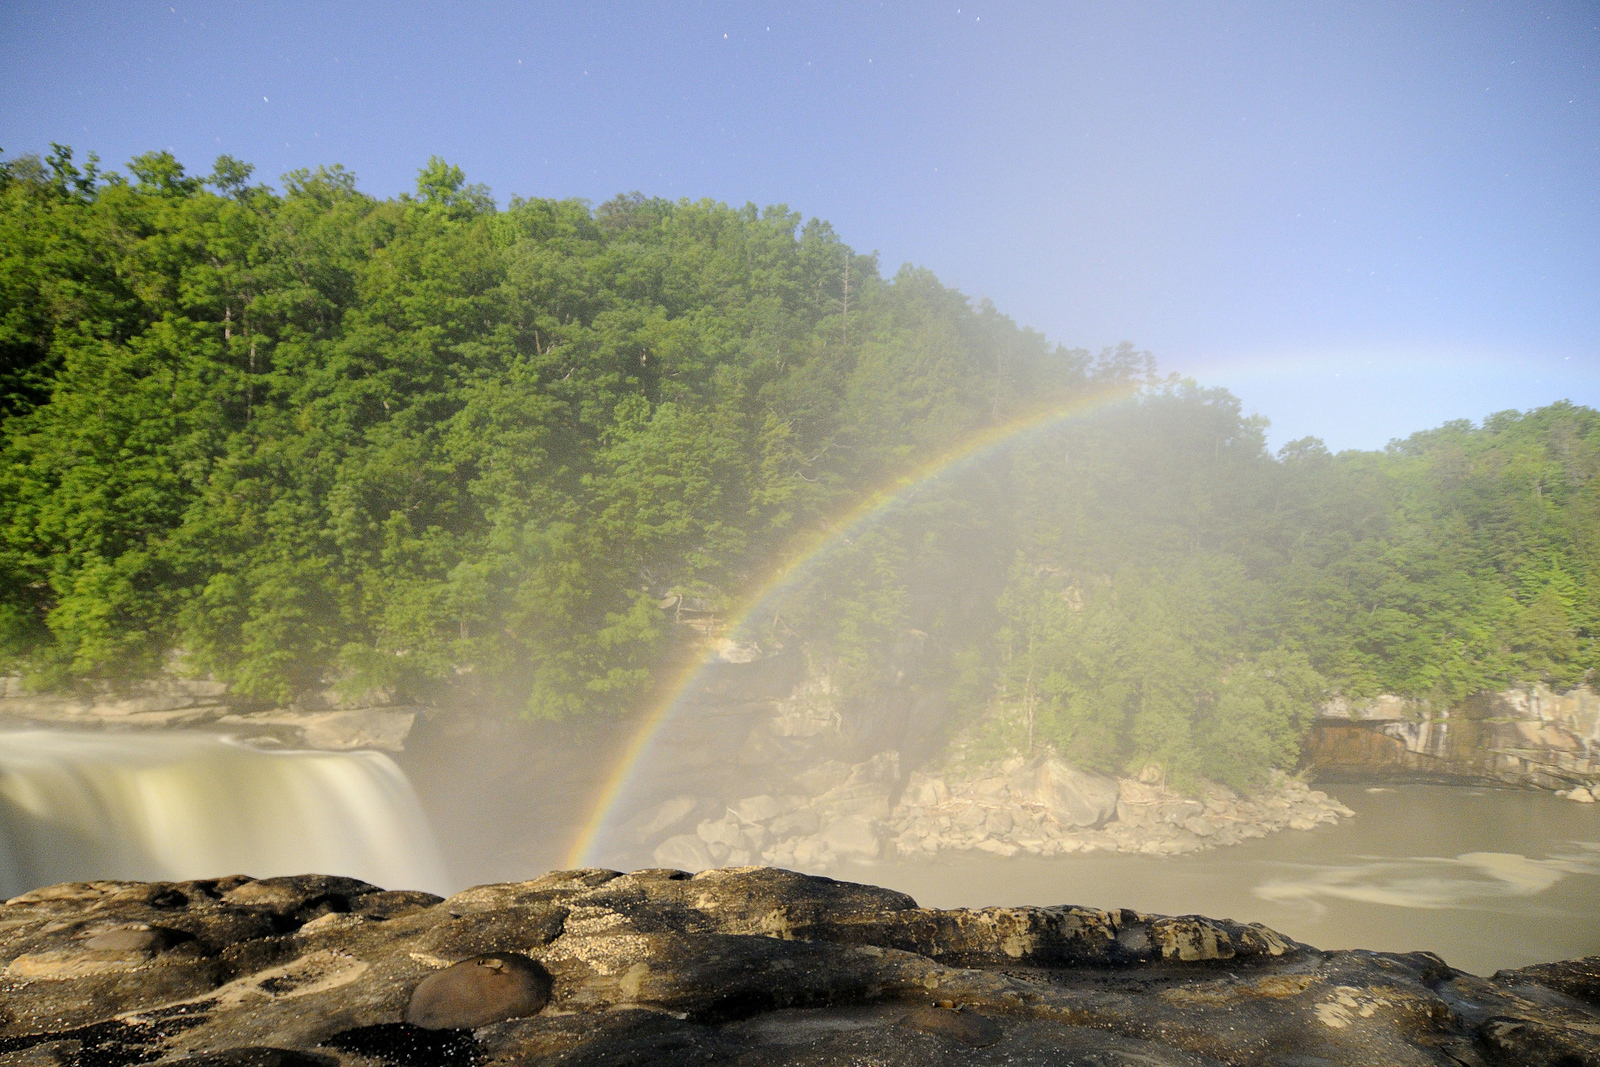 The Moonbow, a natural occurrence when the light from a full moon causes a rainbow to appear at night in the mist of the waterfall, at Cumberland Falls State Resort Park in Corbin, KY on Friday, May 24, 2013. Copyright 2013 Jason Barnette